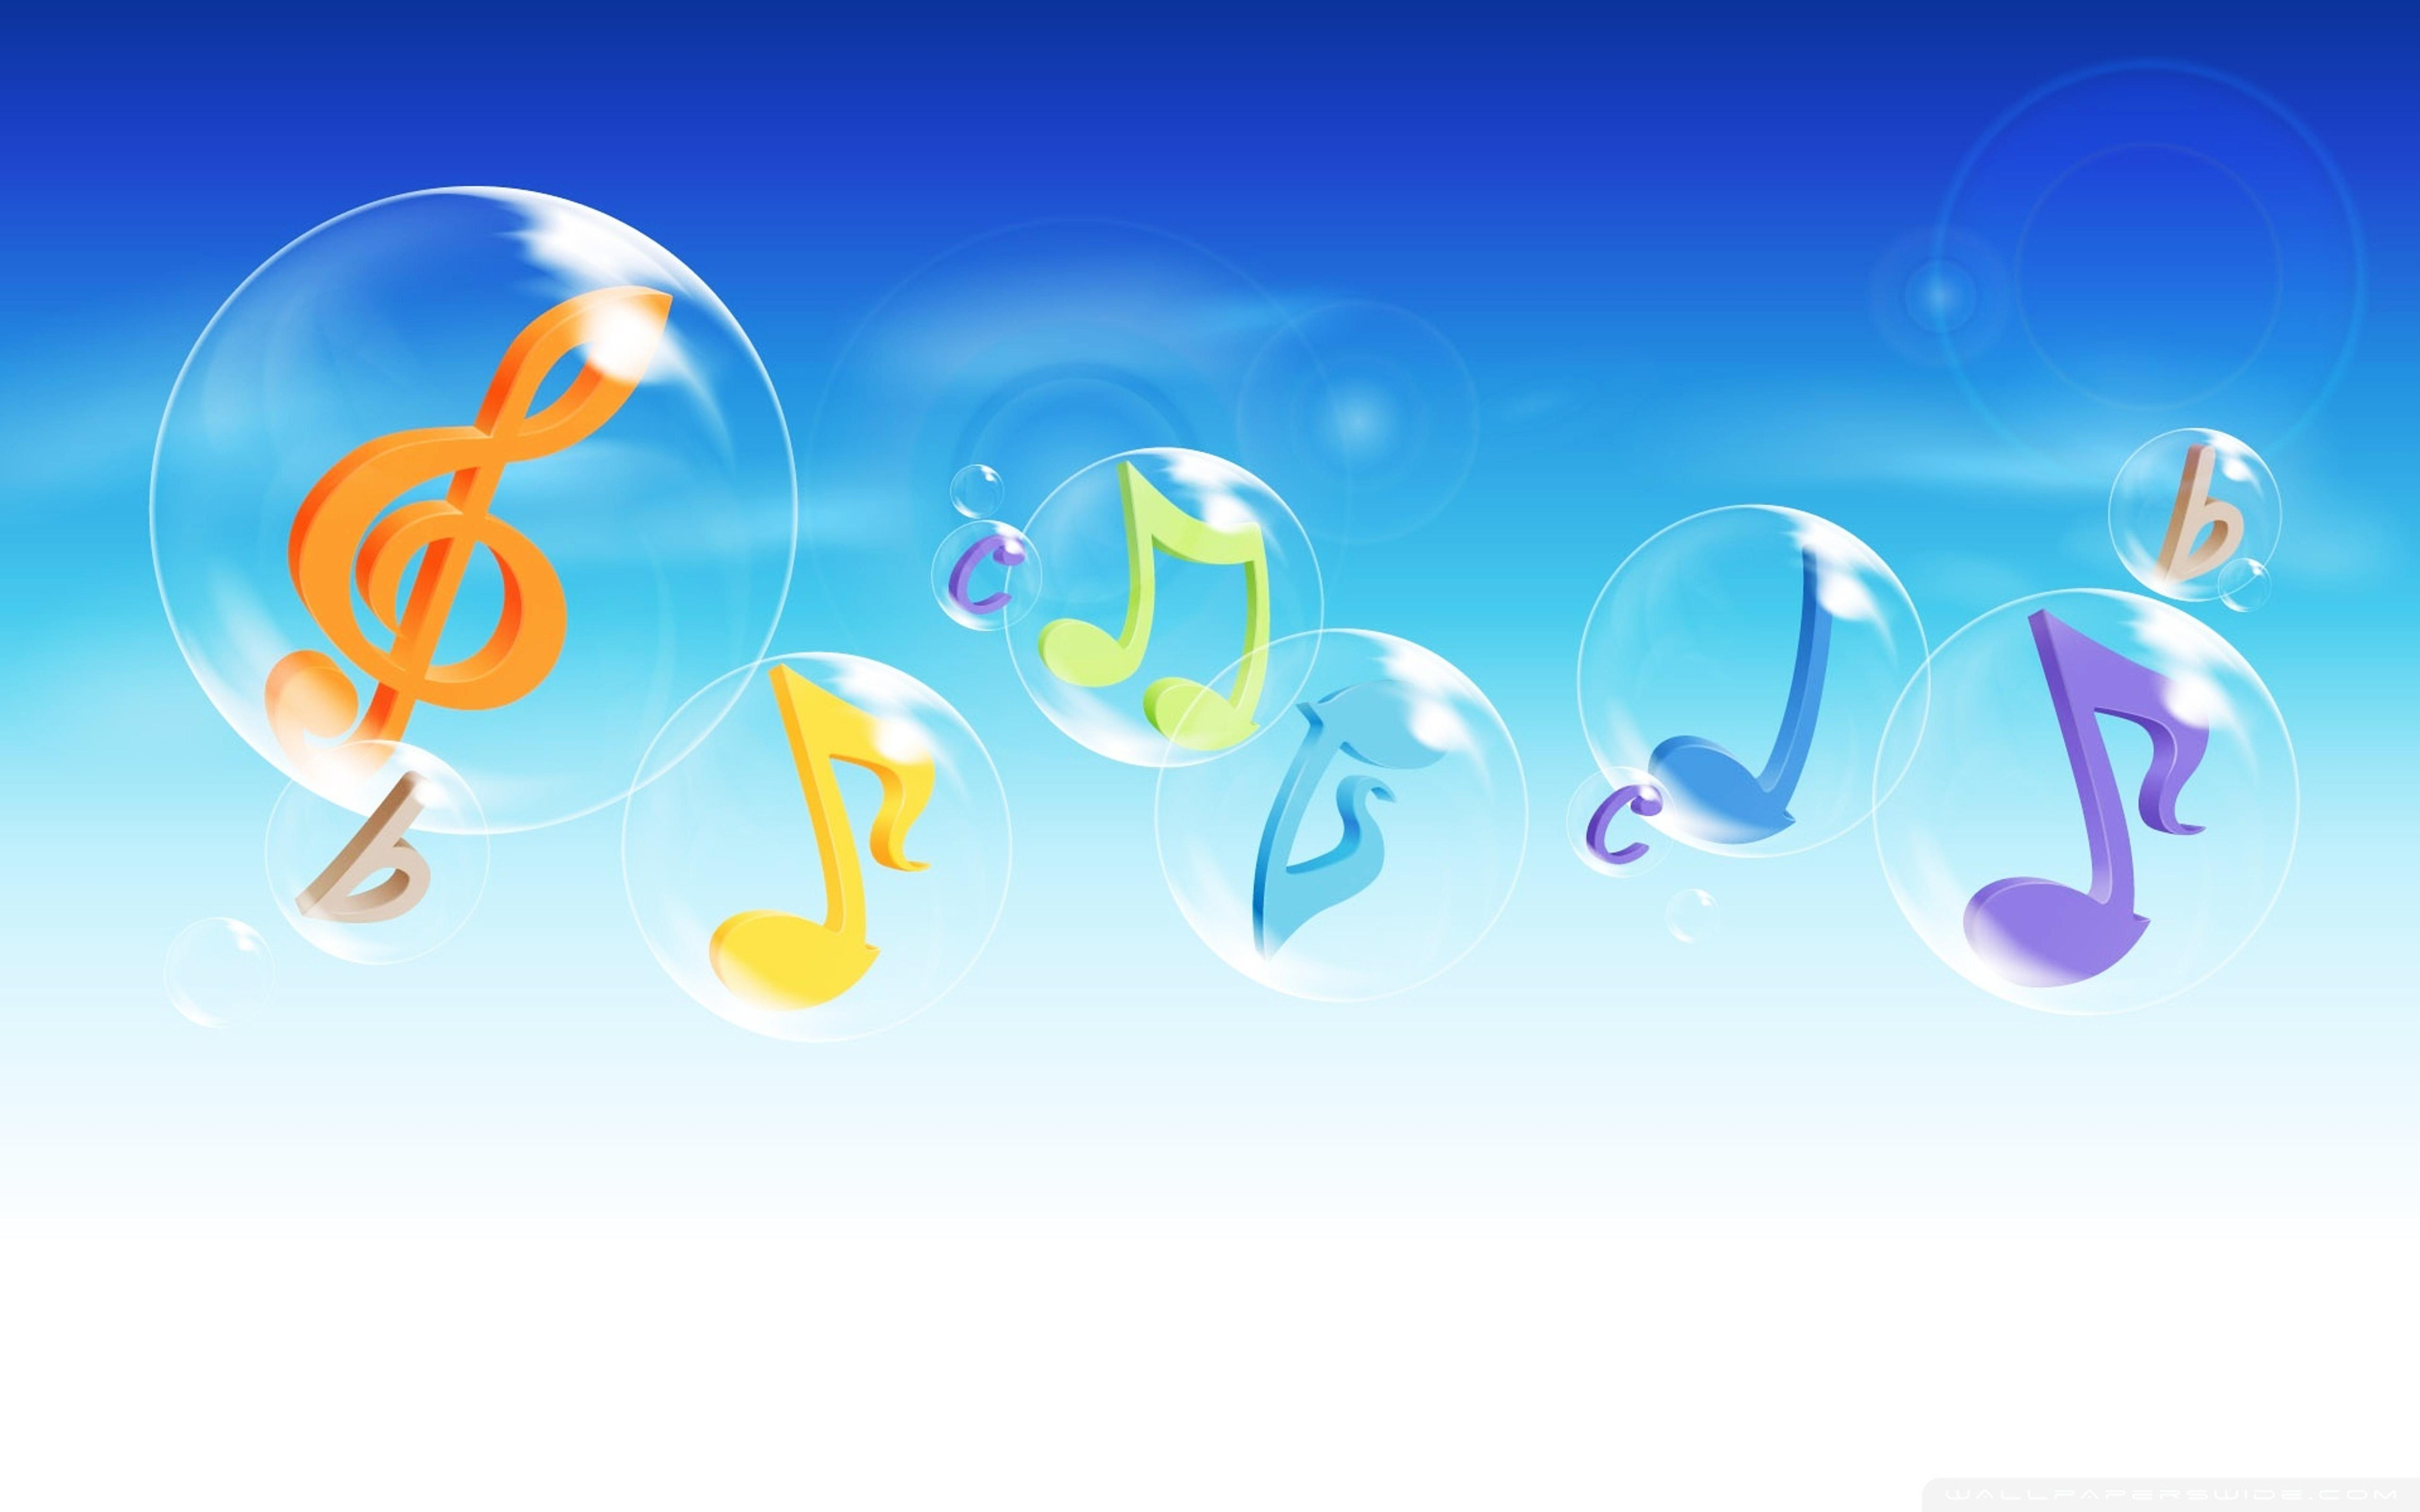 Sol Key Musical Notes And Letters In The Bubbles Wallpaper Download 5120x3200